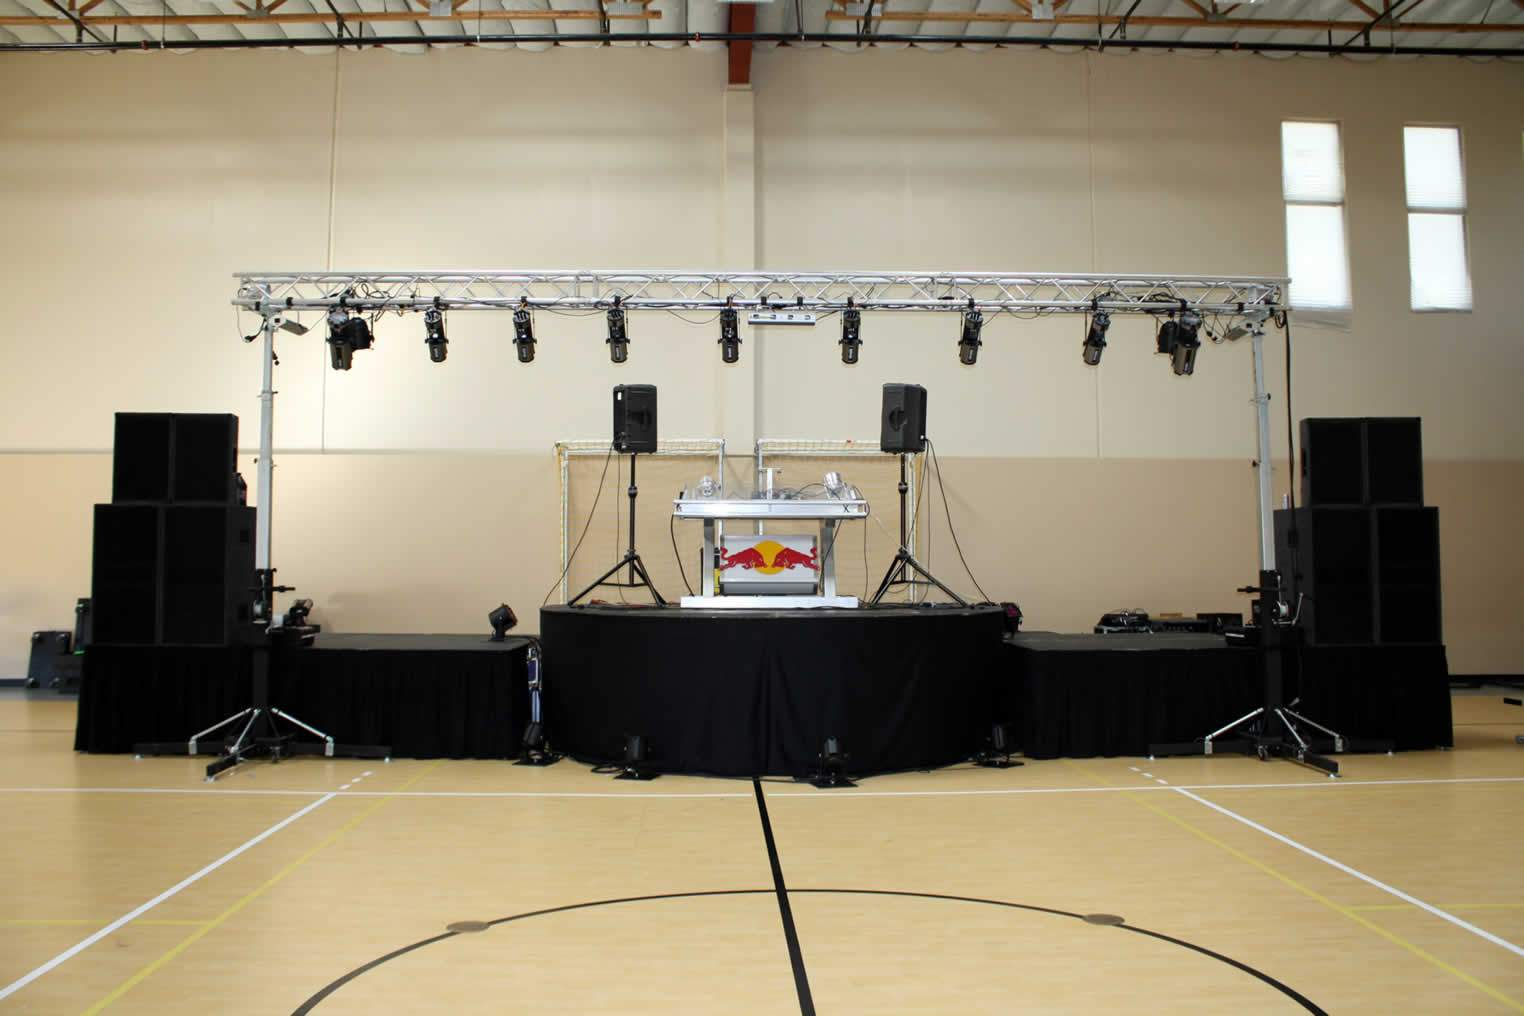 ROUND Stage (built by Eden USA) with Speaker Wings for Social Sunday VI